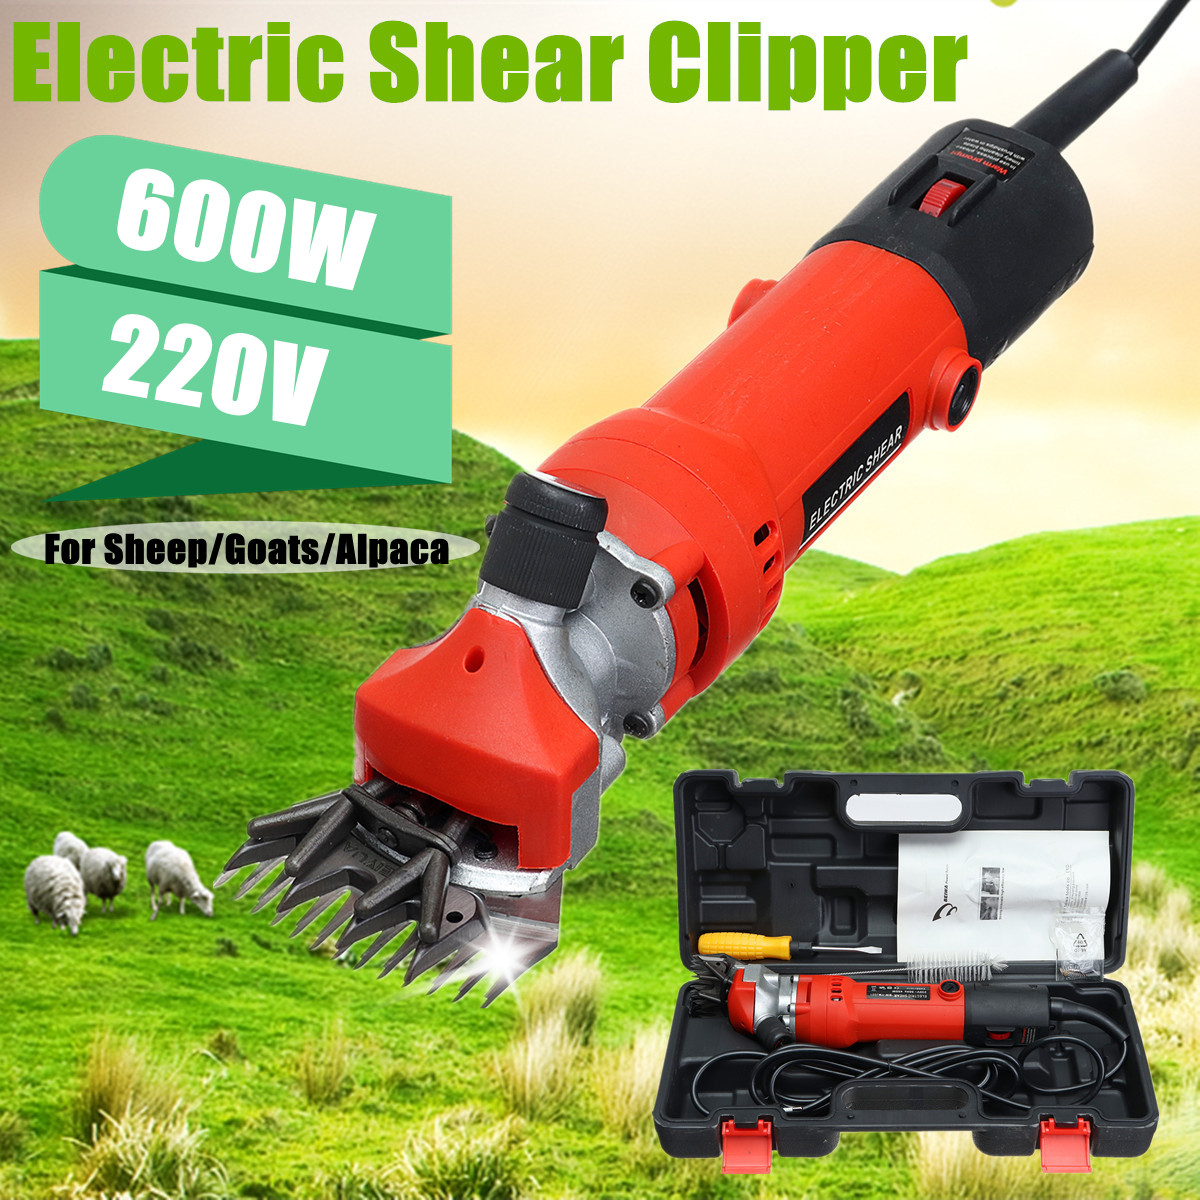 600W 220V Electric Sheep Shearing Machine Goat Hair Trimmer Clippers Power Tools